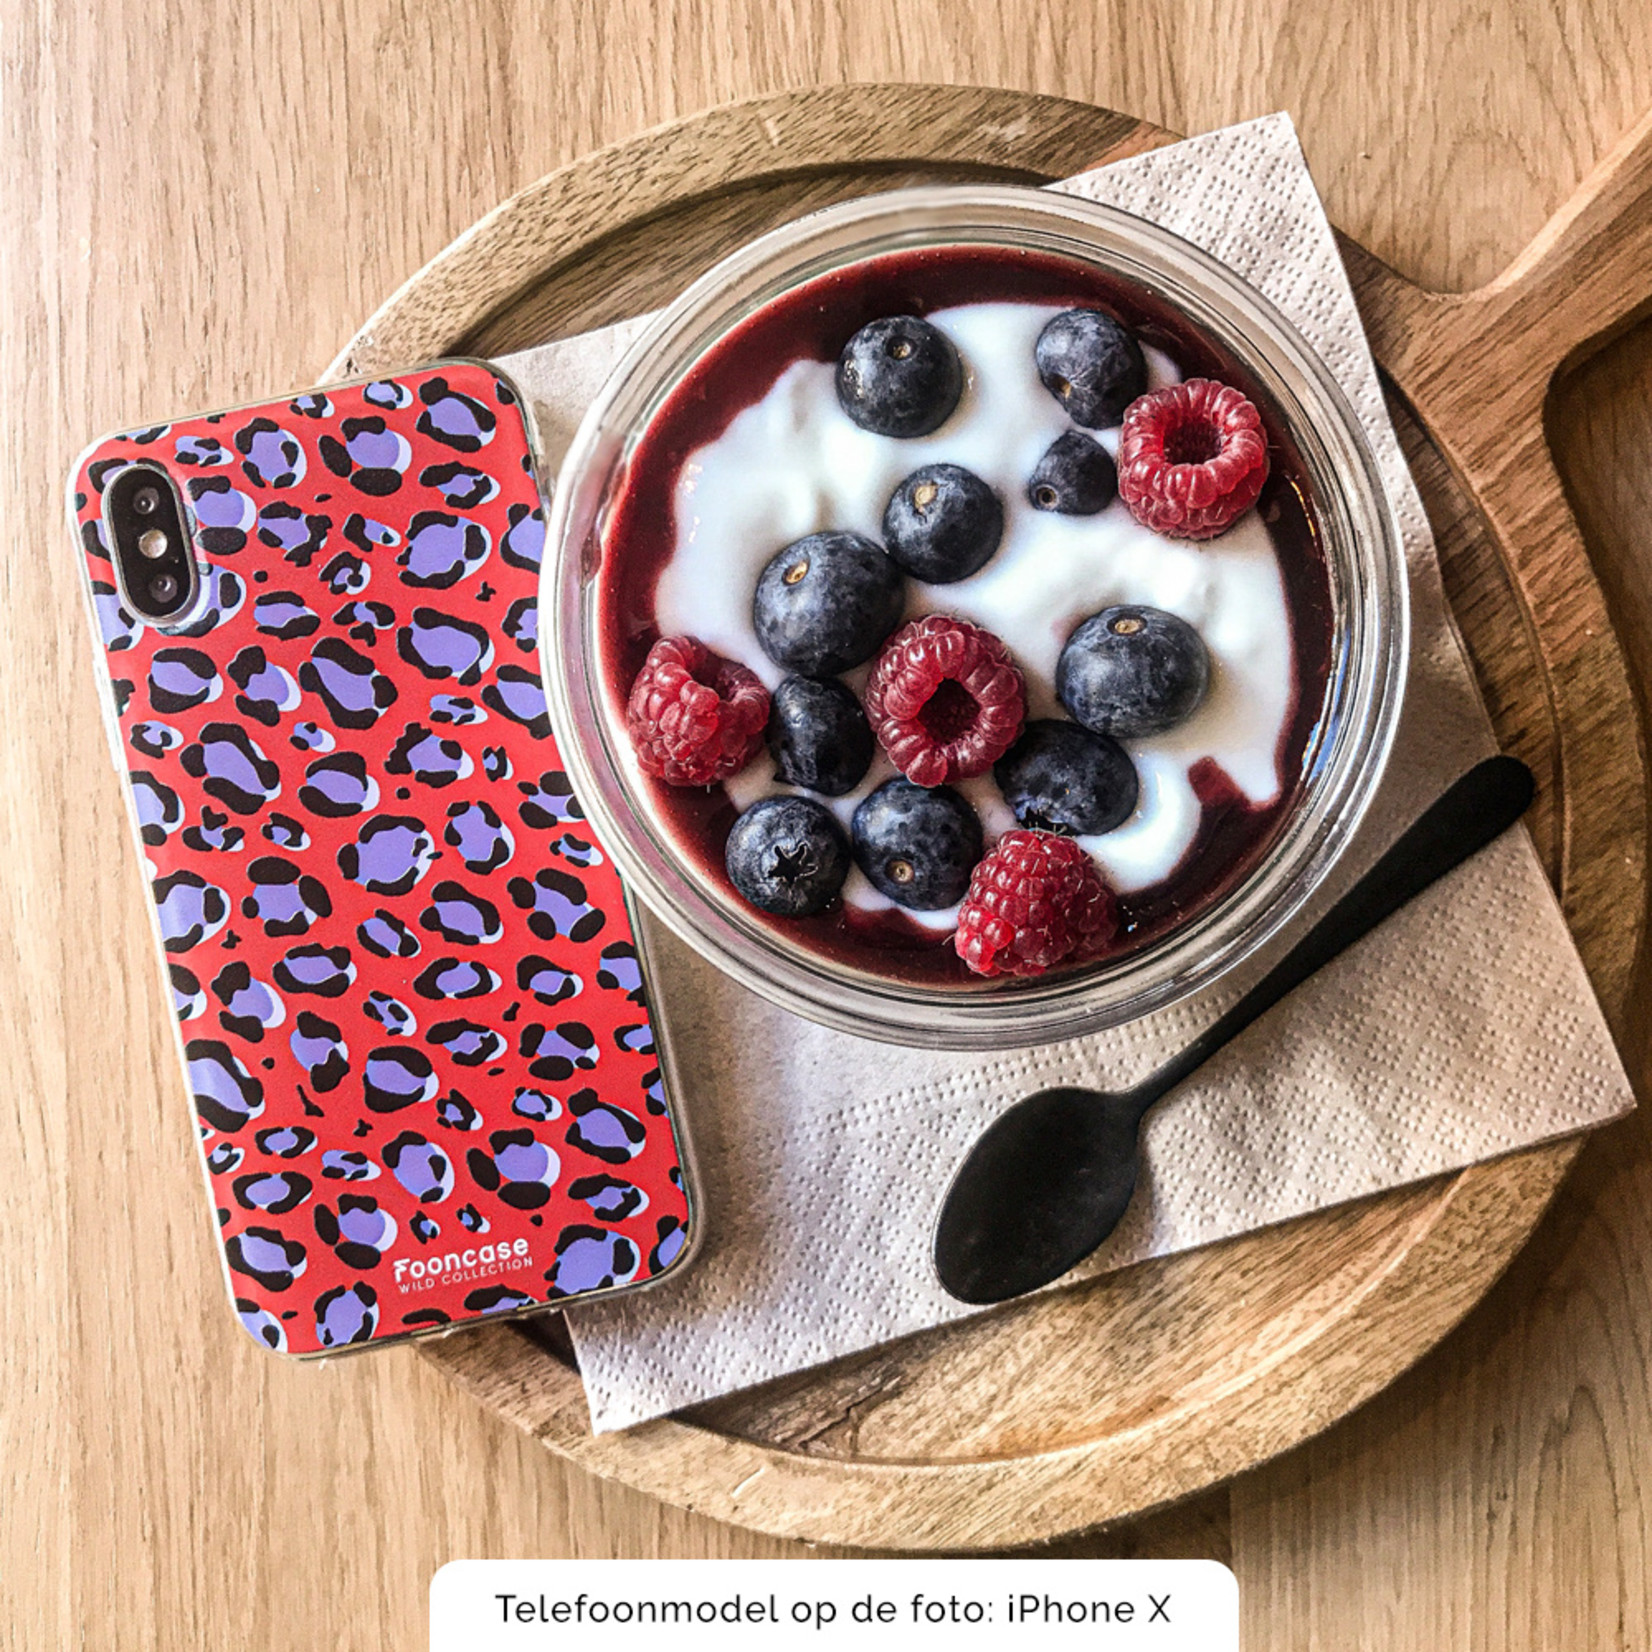 FOONCASE Samsung Galaxy S7 hoesje TPU Soft Case - Back Cover - WILD COLLECTION / Luipaard / Leopard print / Rood